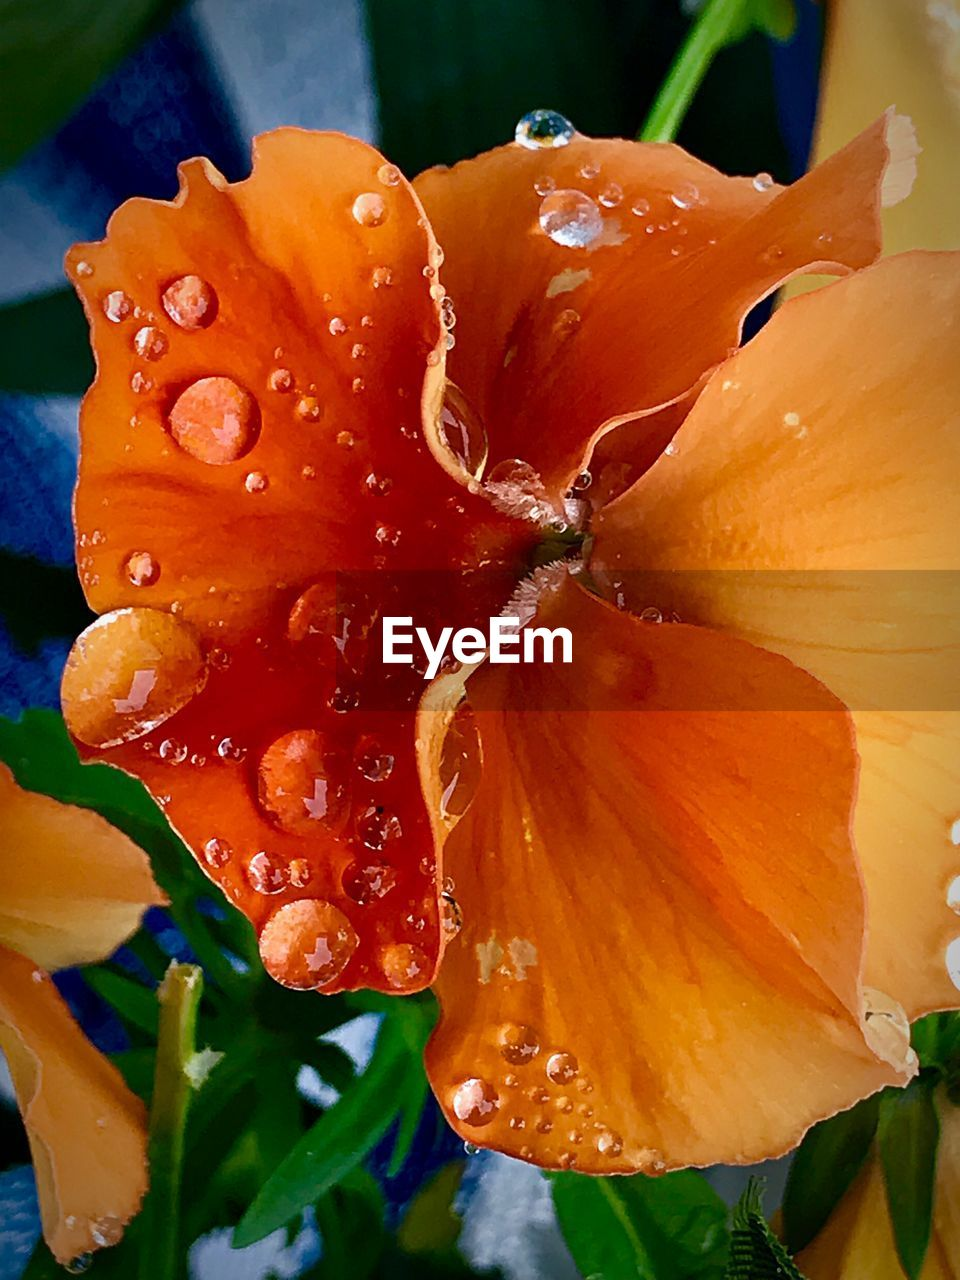 flower, flowering plant, freshness, vulnerability, fragility, petal, beauty in nature, close-up, plant, growth, flower head, drop, wet, inflorescence, water, orange color, no people, nature, focus on foreground, pollen, outdoors, dew, rain, raindrop, rainy season, purity